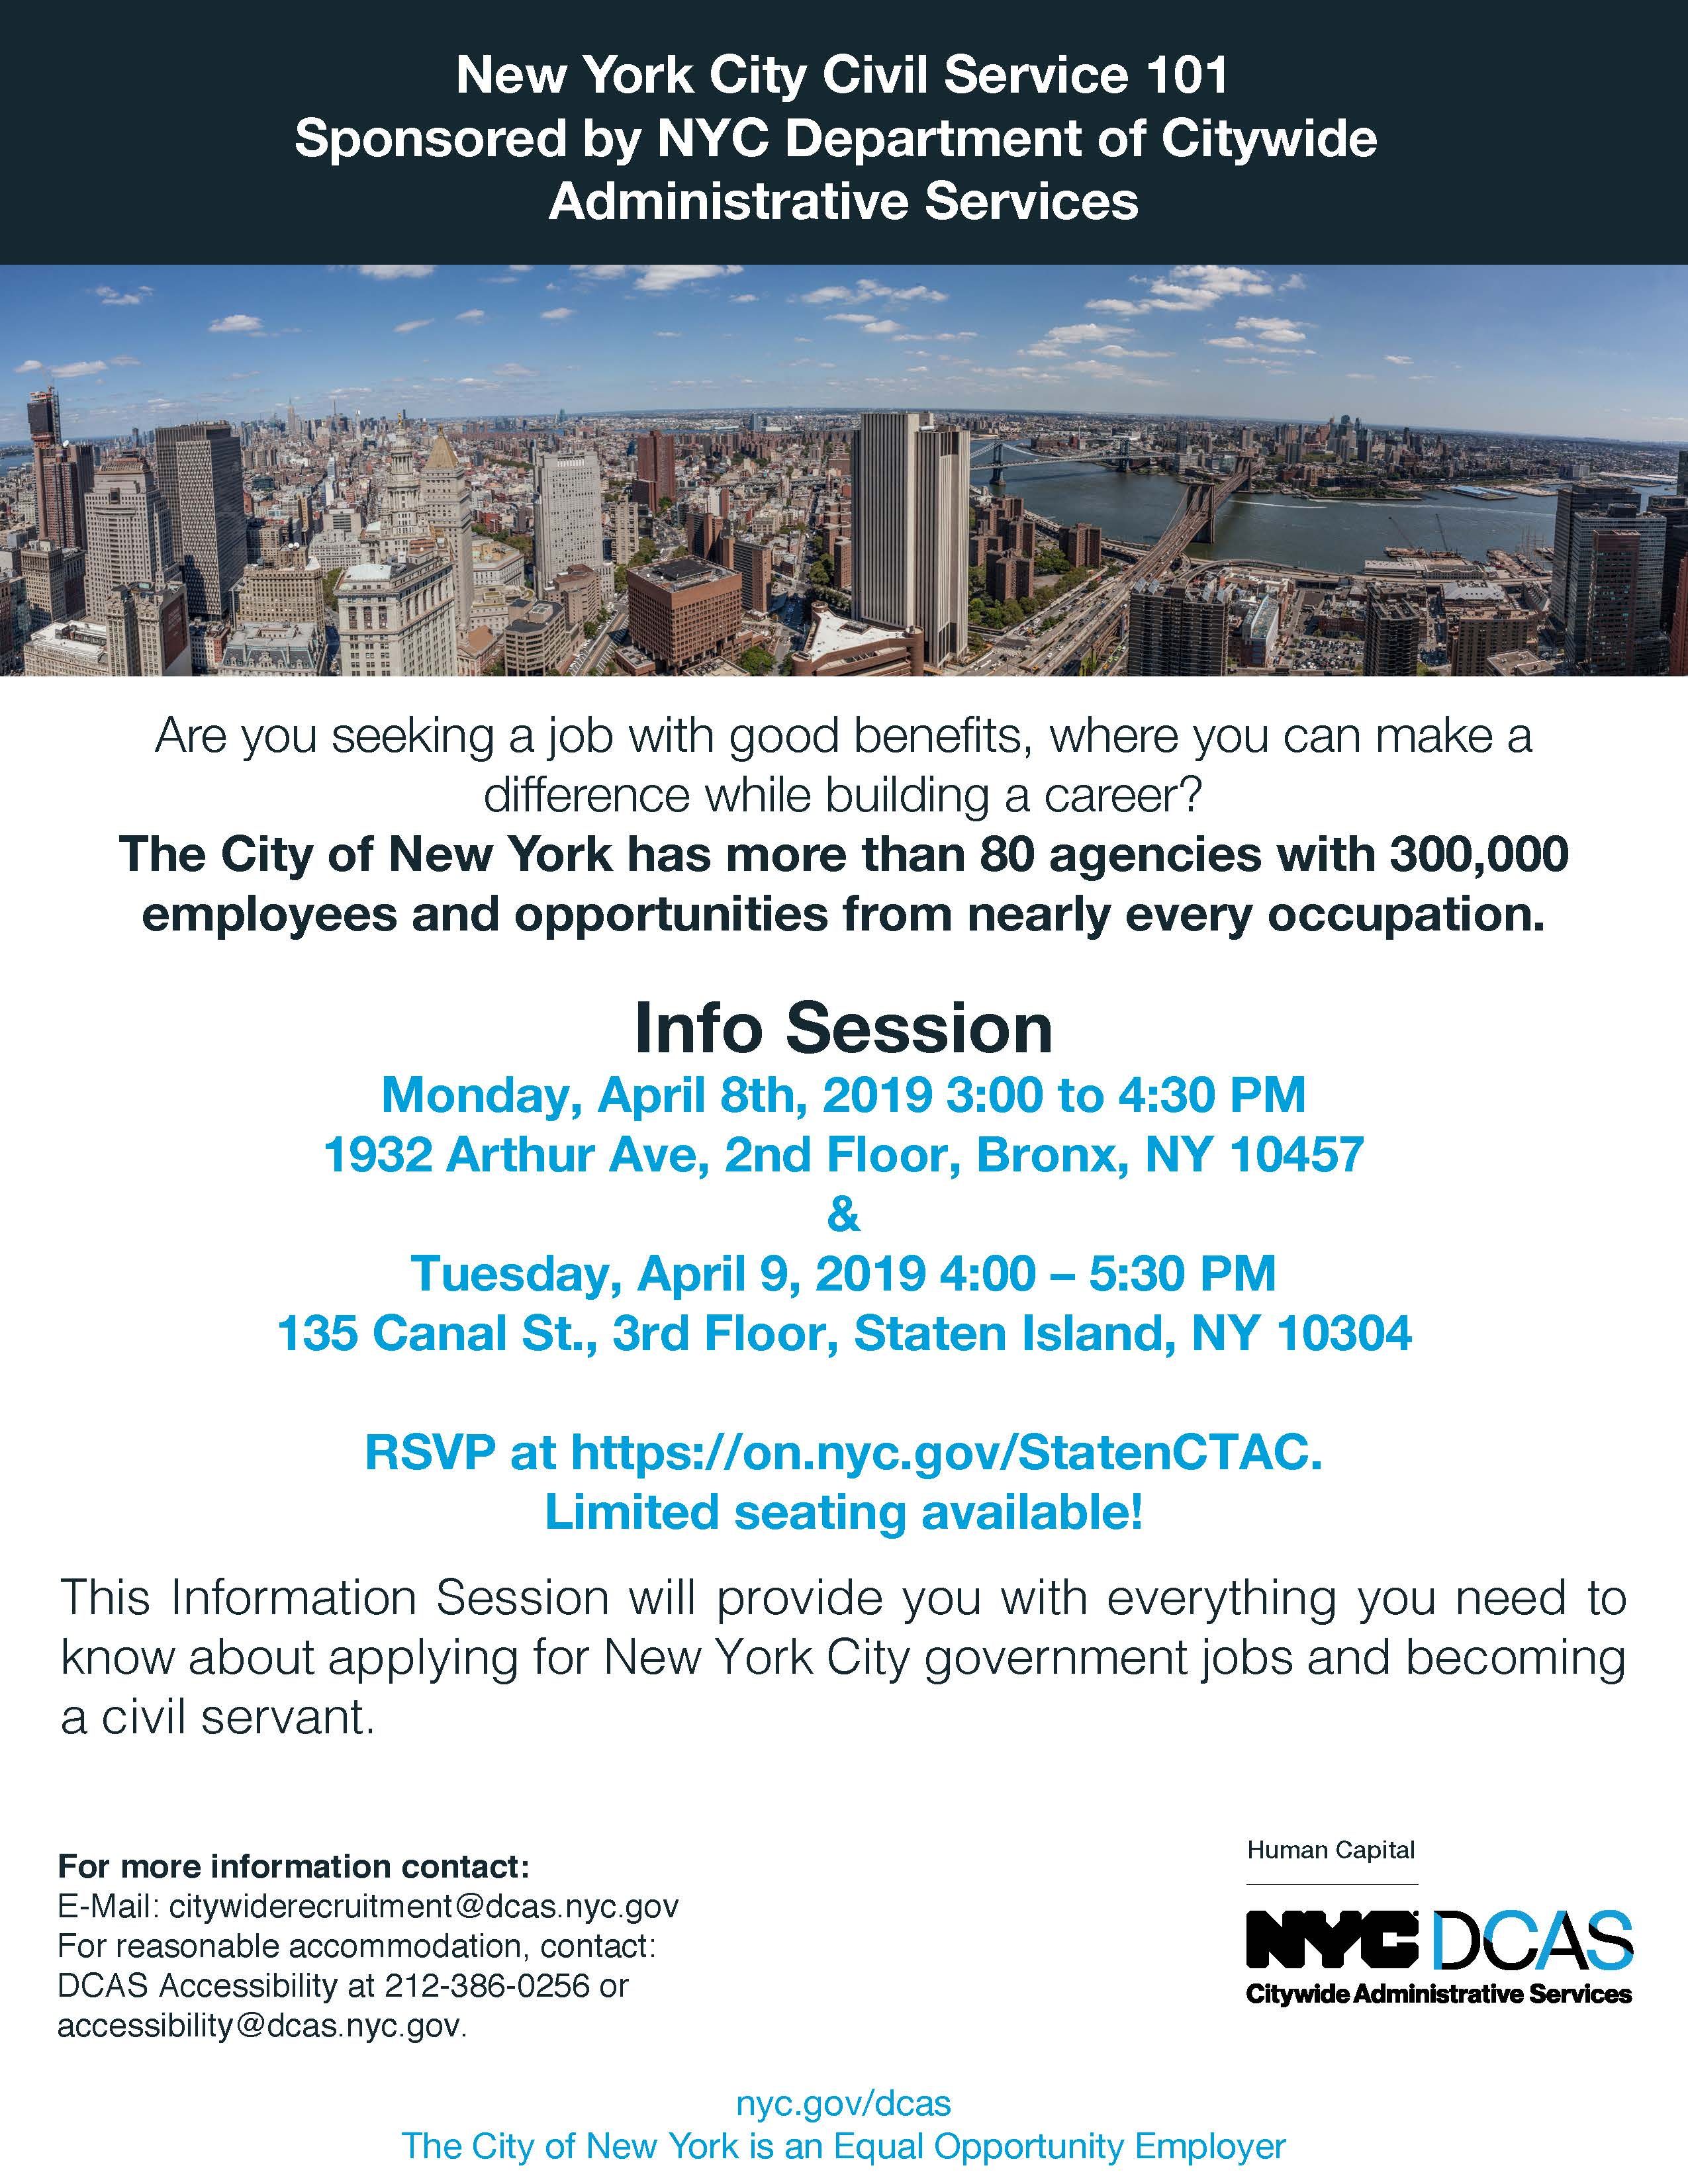 NYC DCAS Information Session - Monday April 8th, 2019 and Tuesday April 9,2019